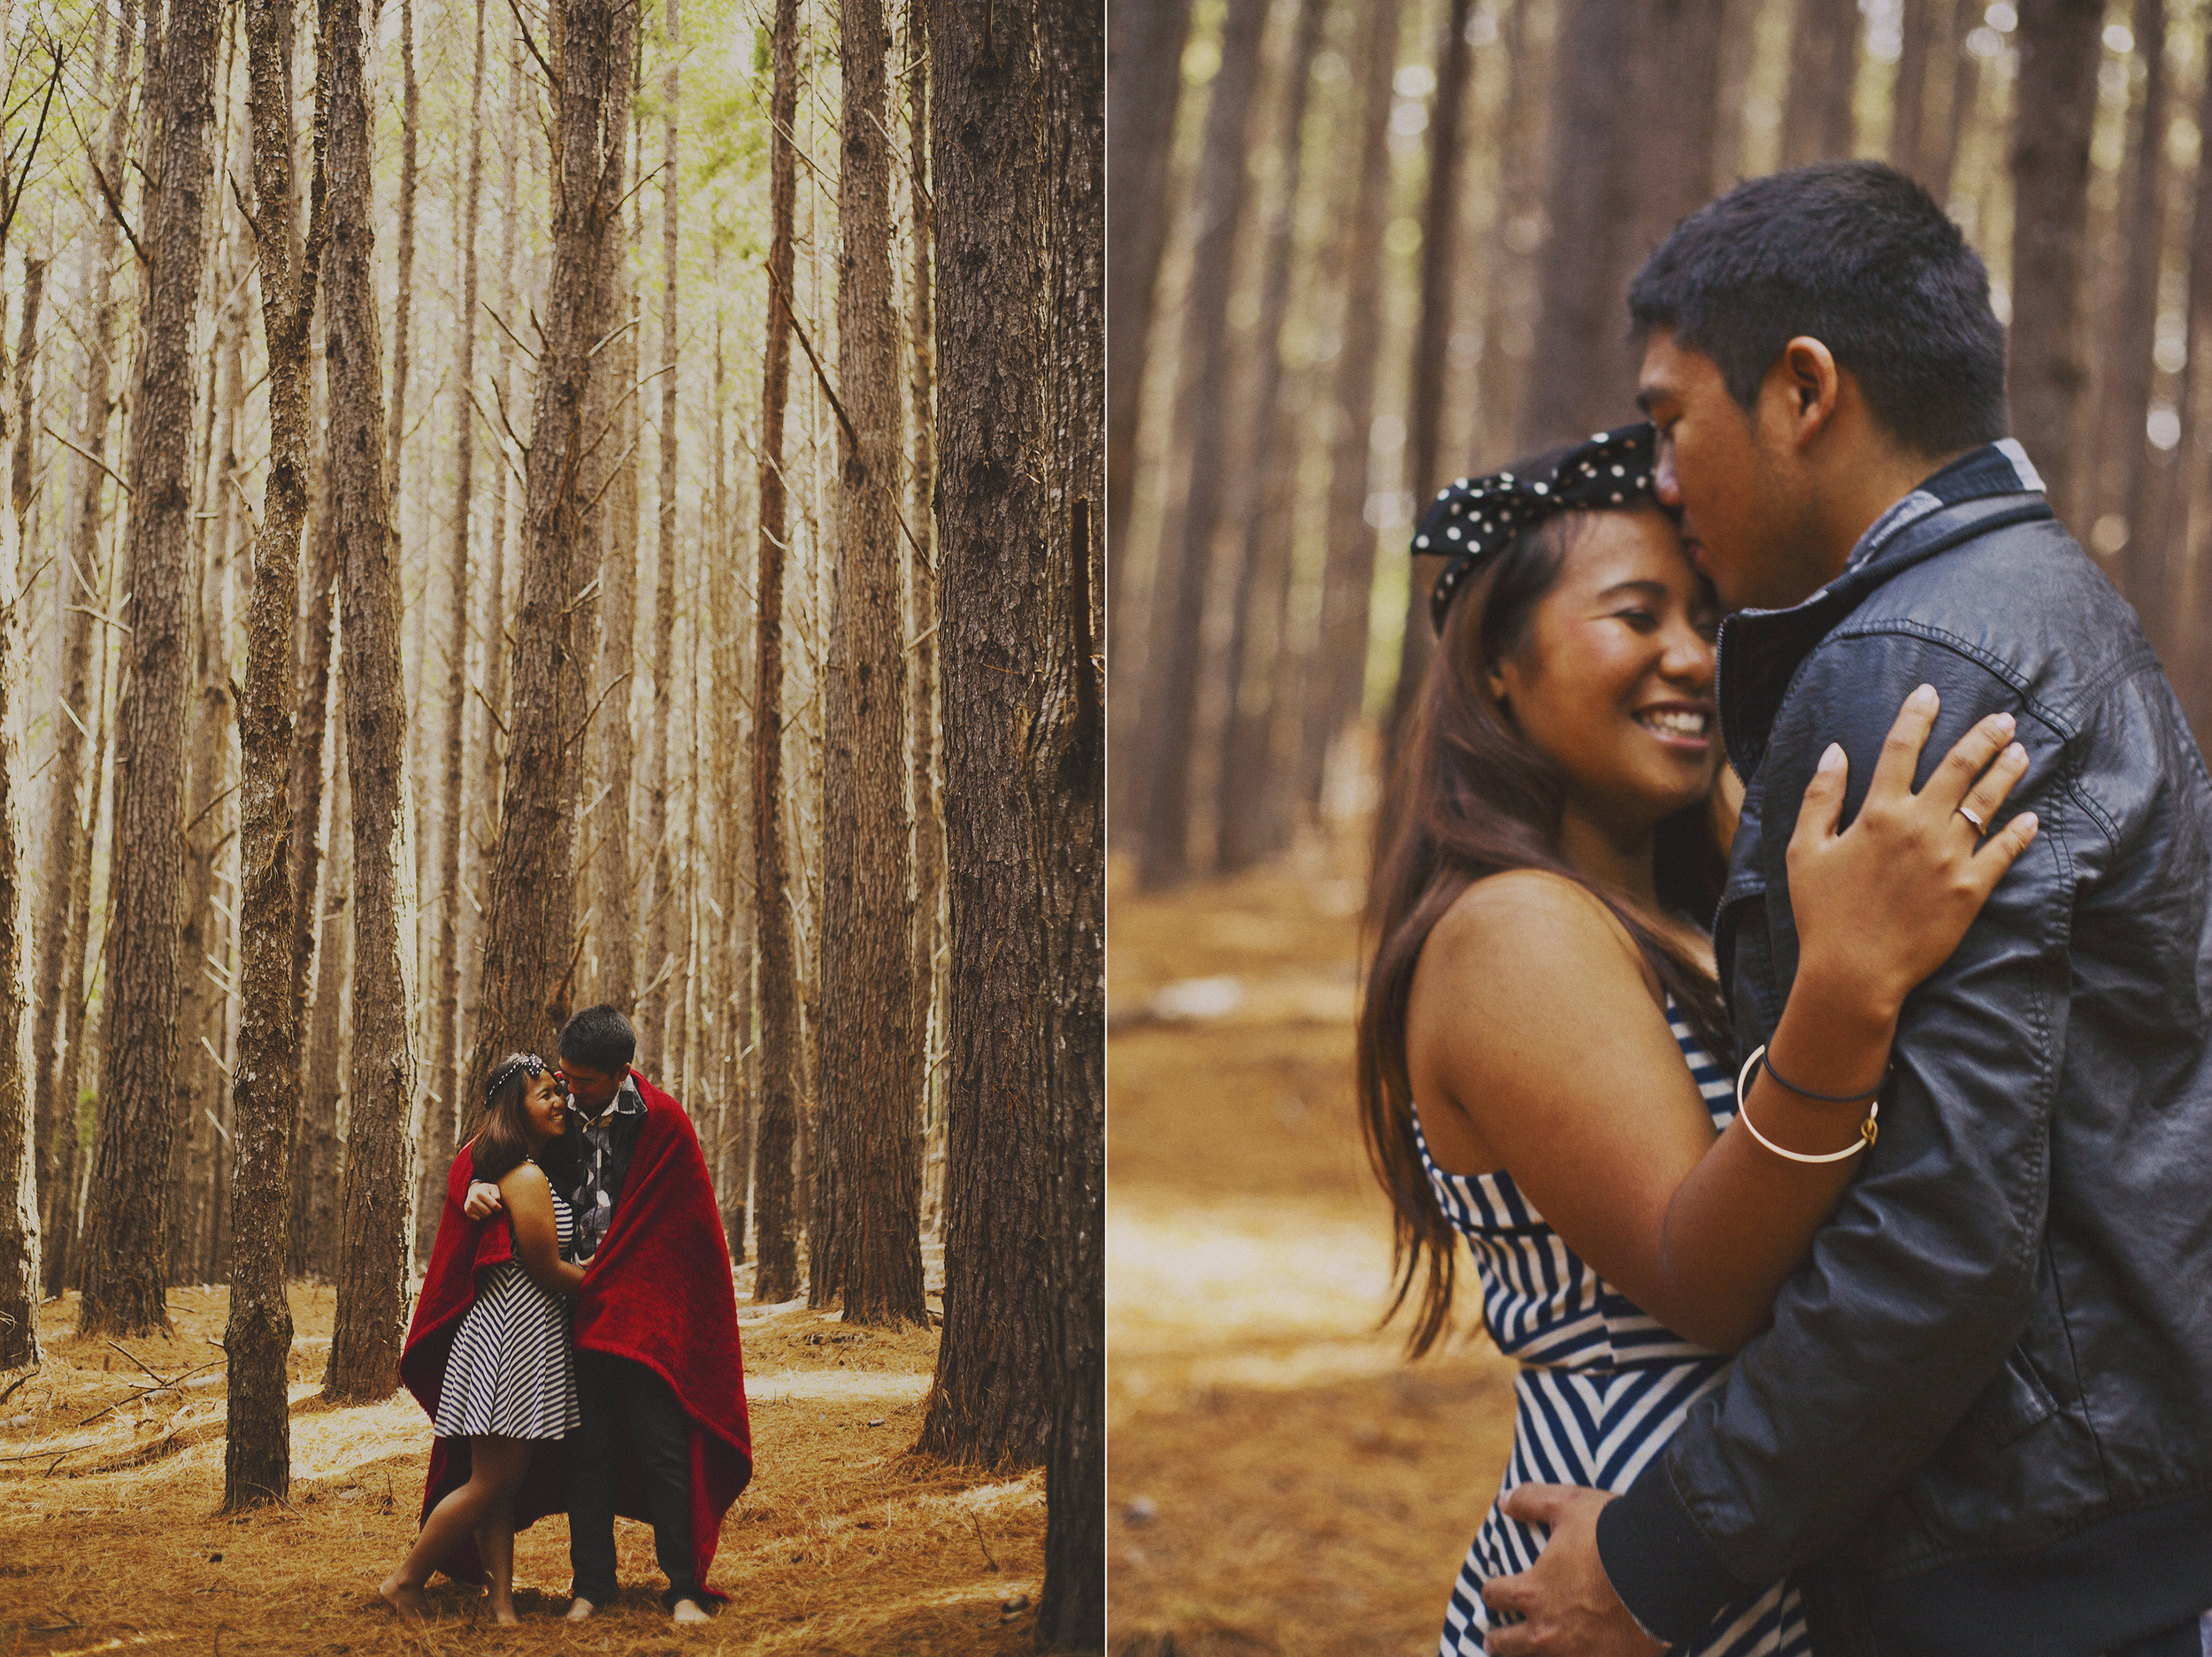 angie-diaz-photography-maui-upcountry-engagement-22.jpg